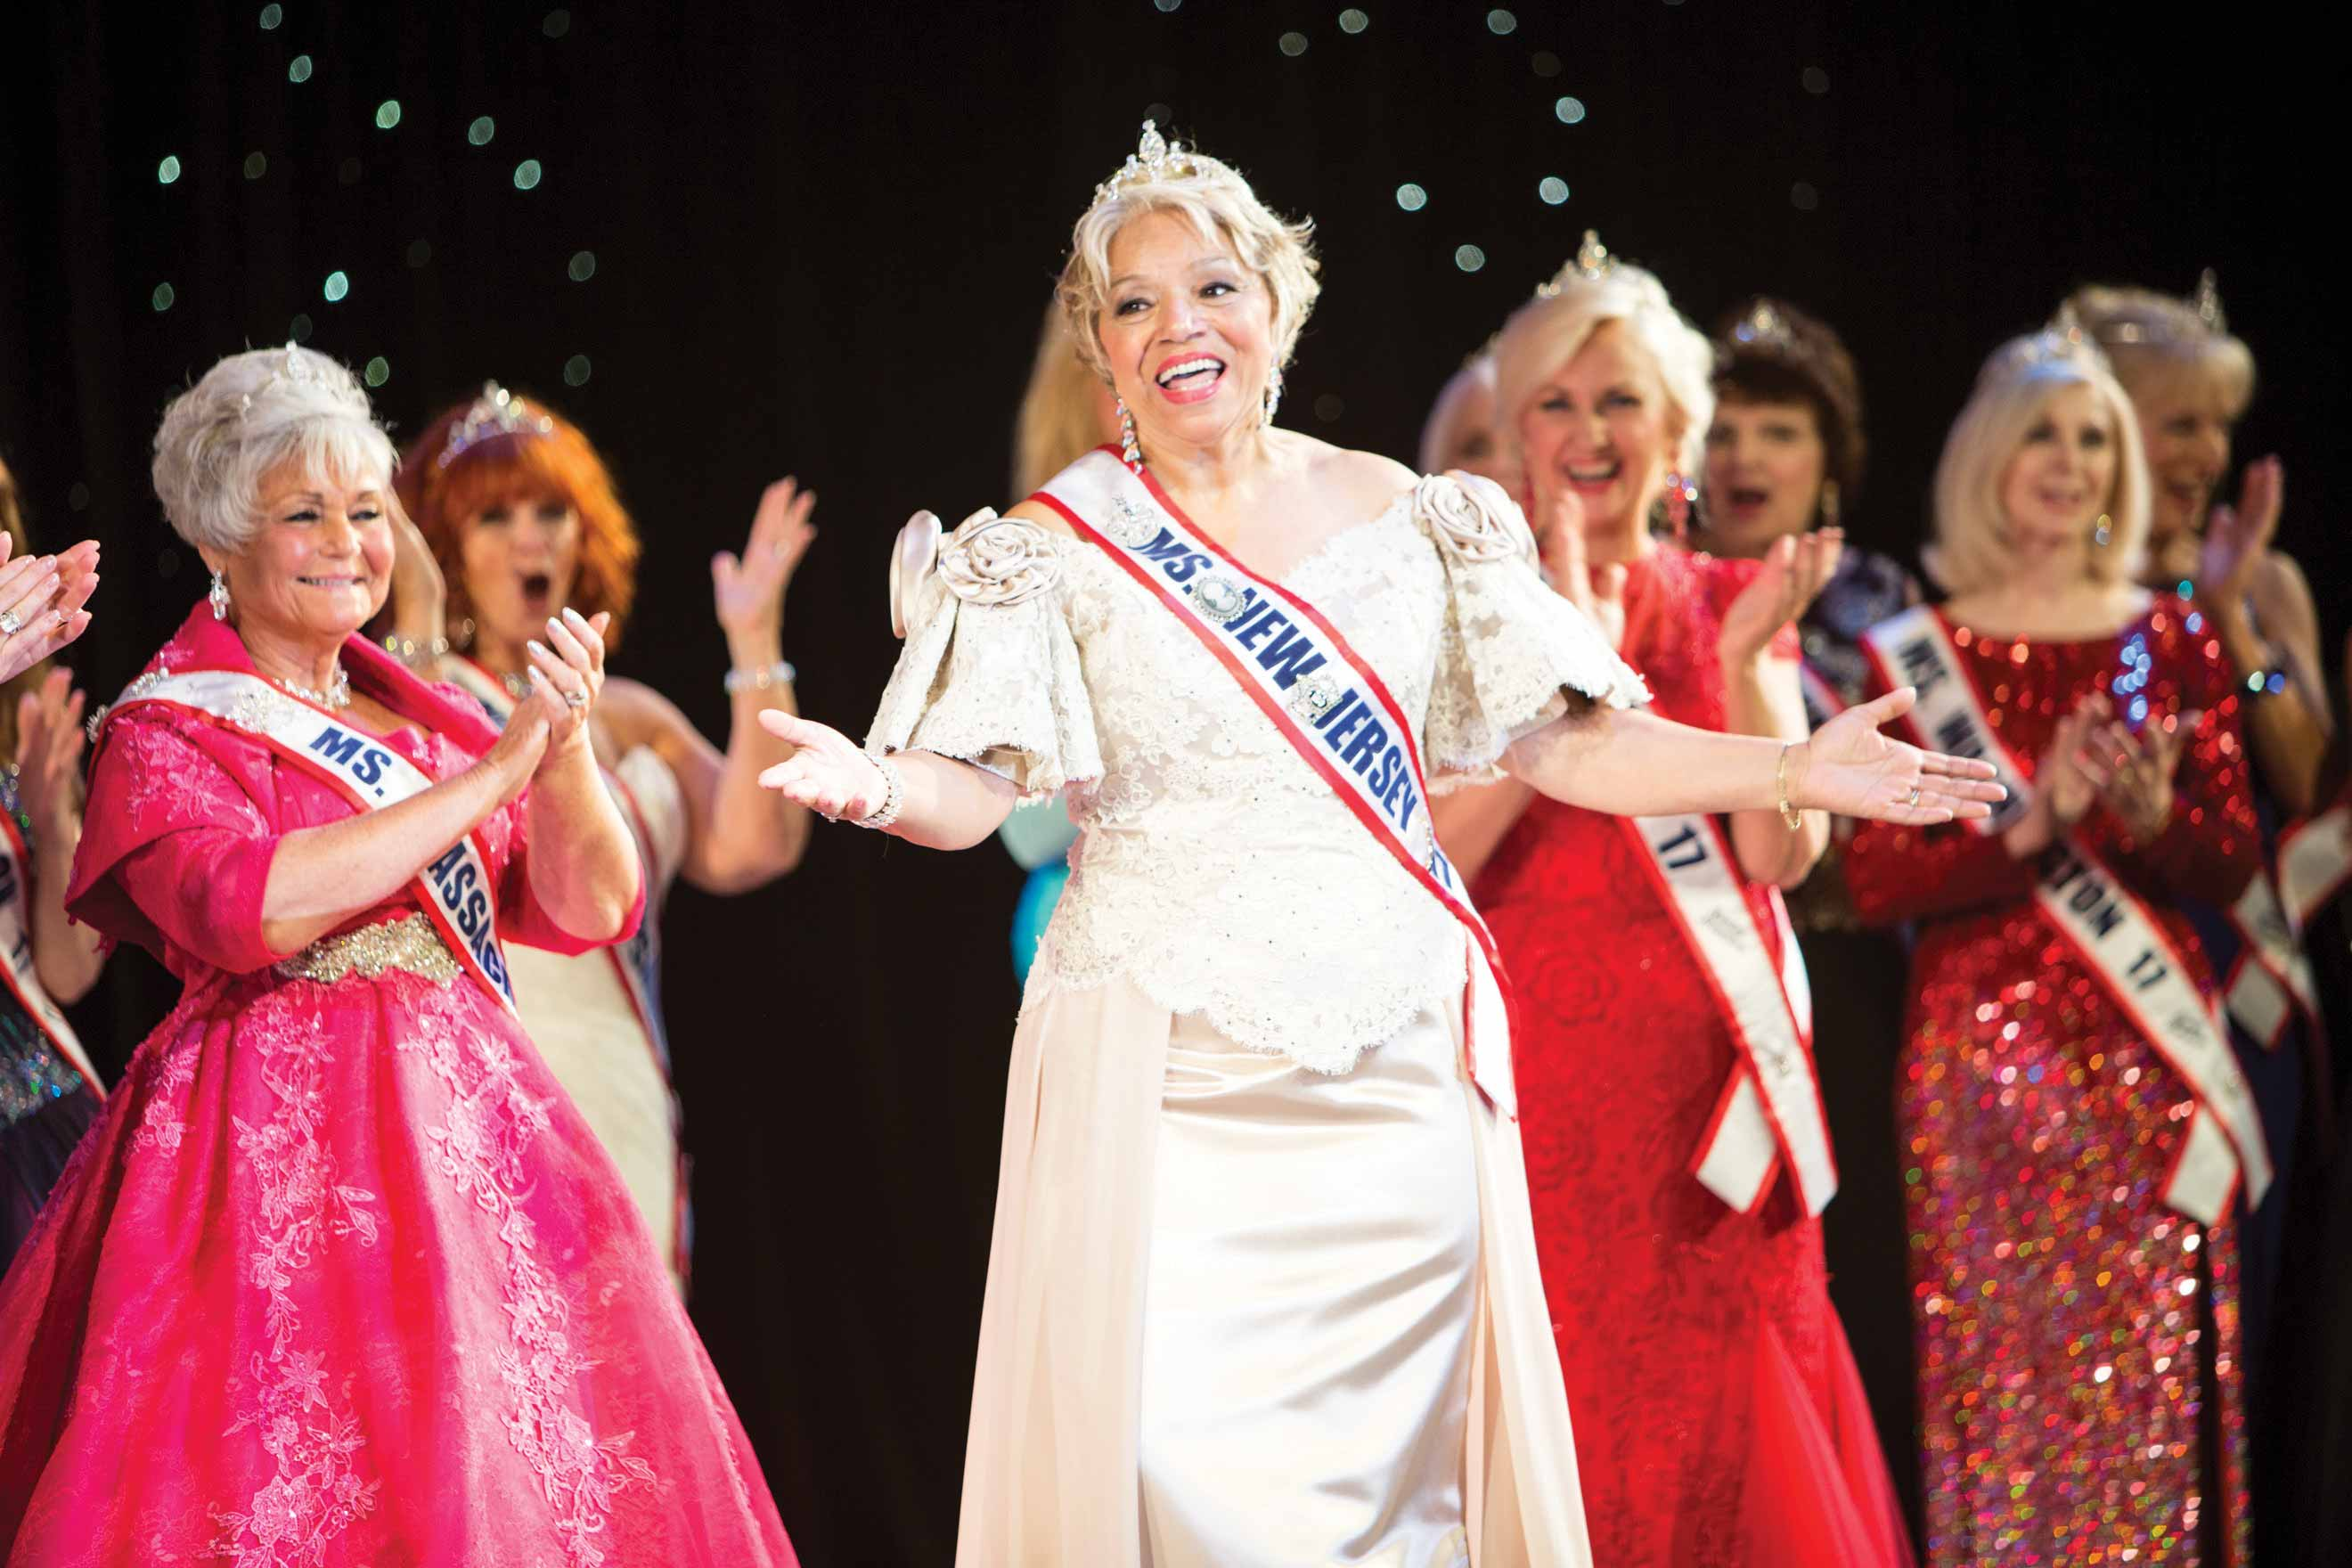 Photograph of contestants at Ms. Senior America Pageant